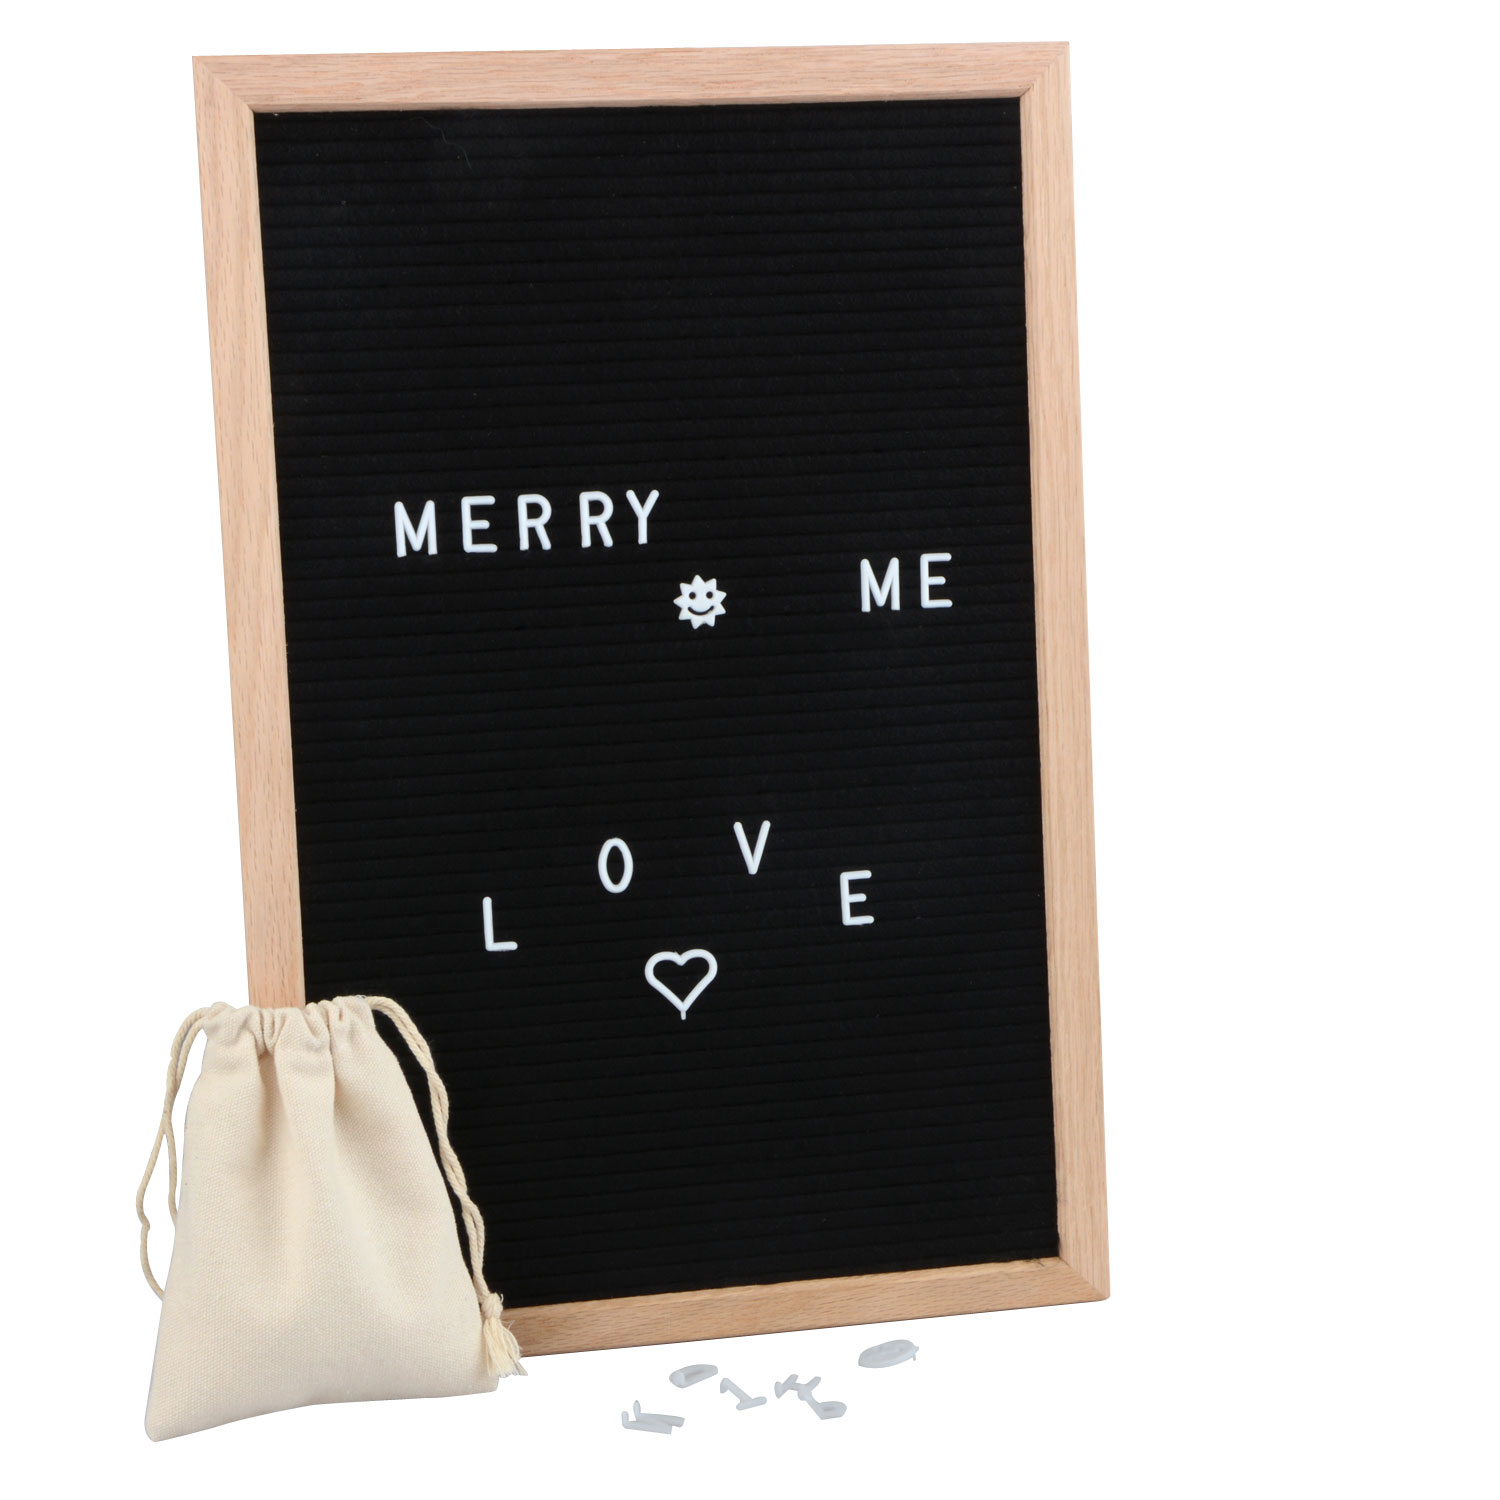 12*18 Inch Bar Home Letter Board Sign Message Board 340 Pcs White Letters Symbols Numbers Kids Fun Learning Decorative Boards